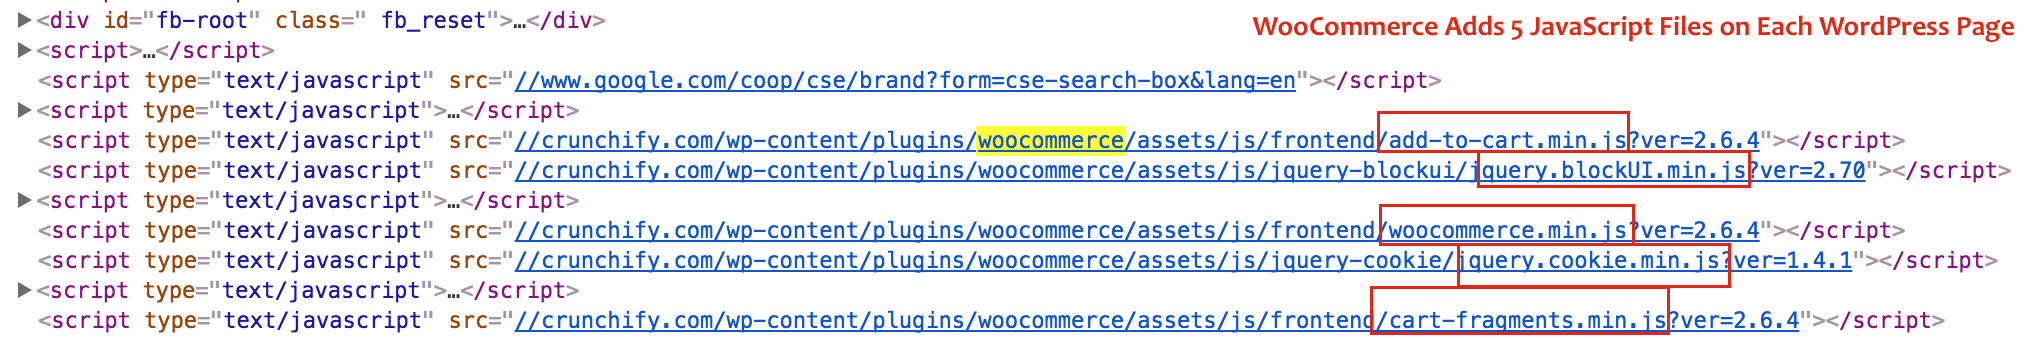 WooCommerce Adds 5 JavaScript Files on Each WordPress Page